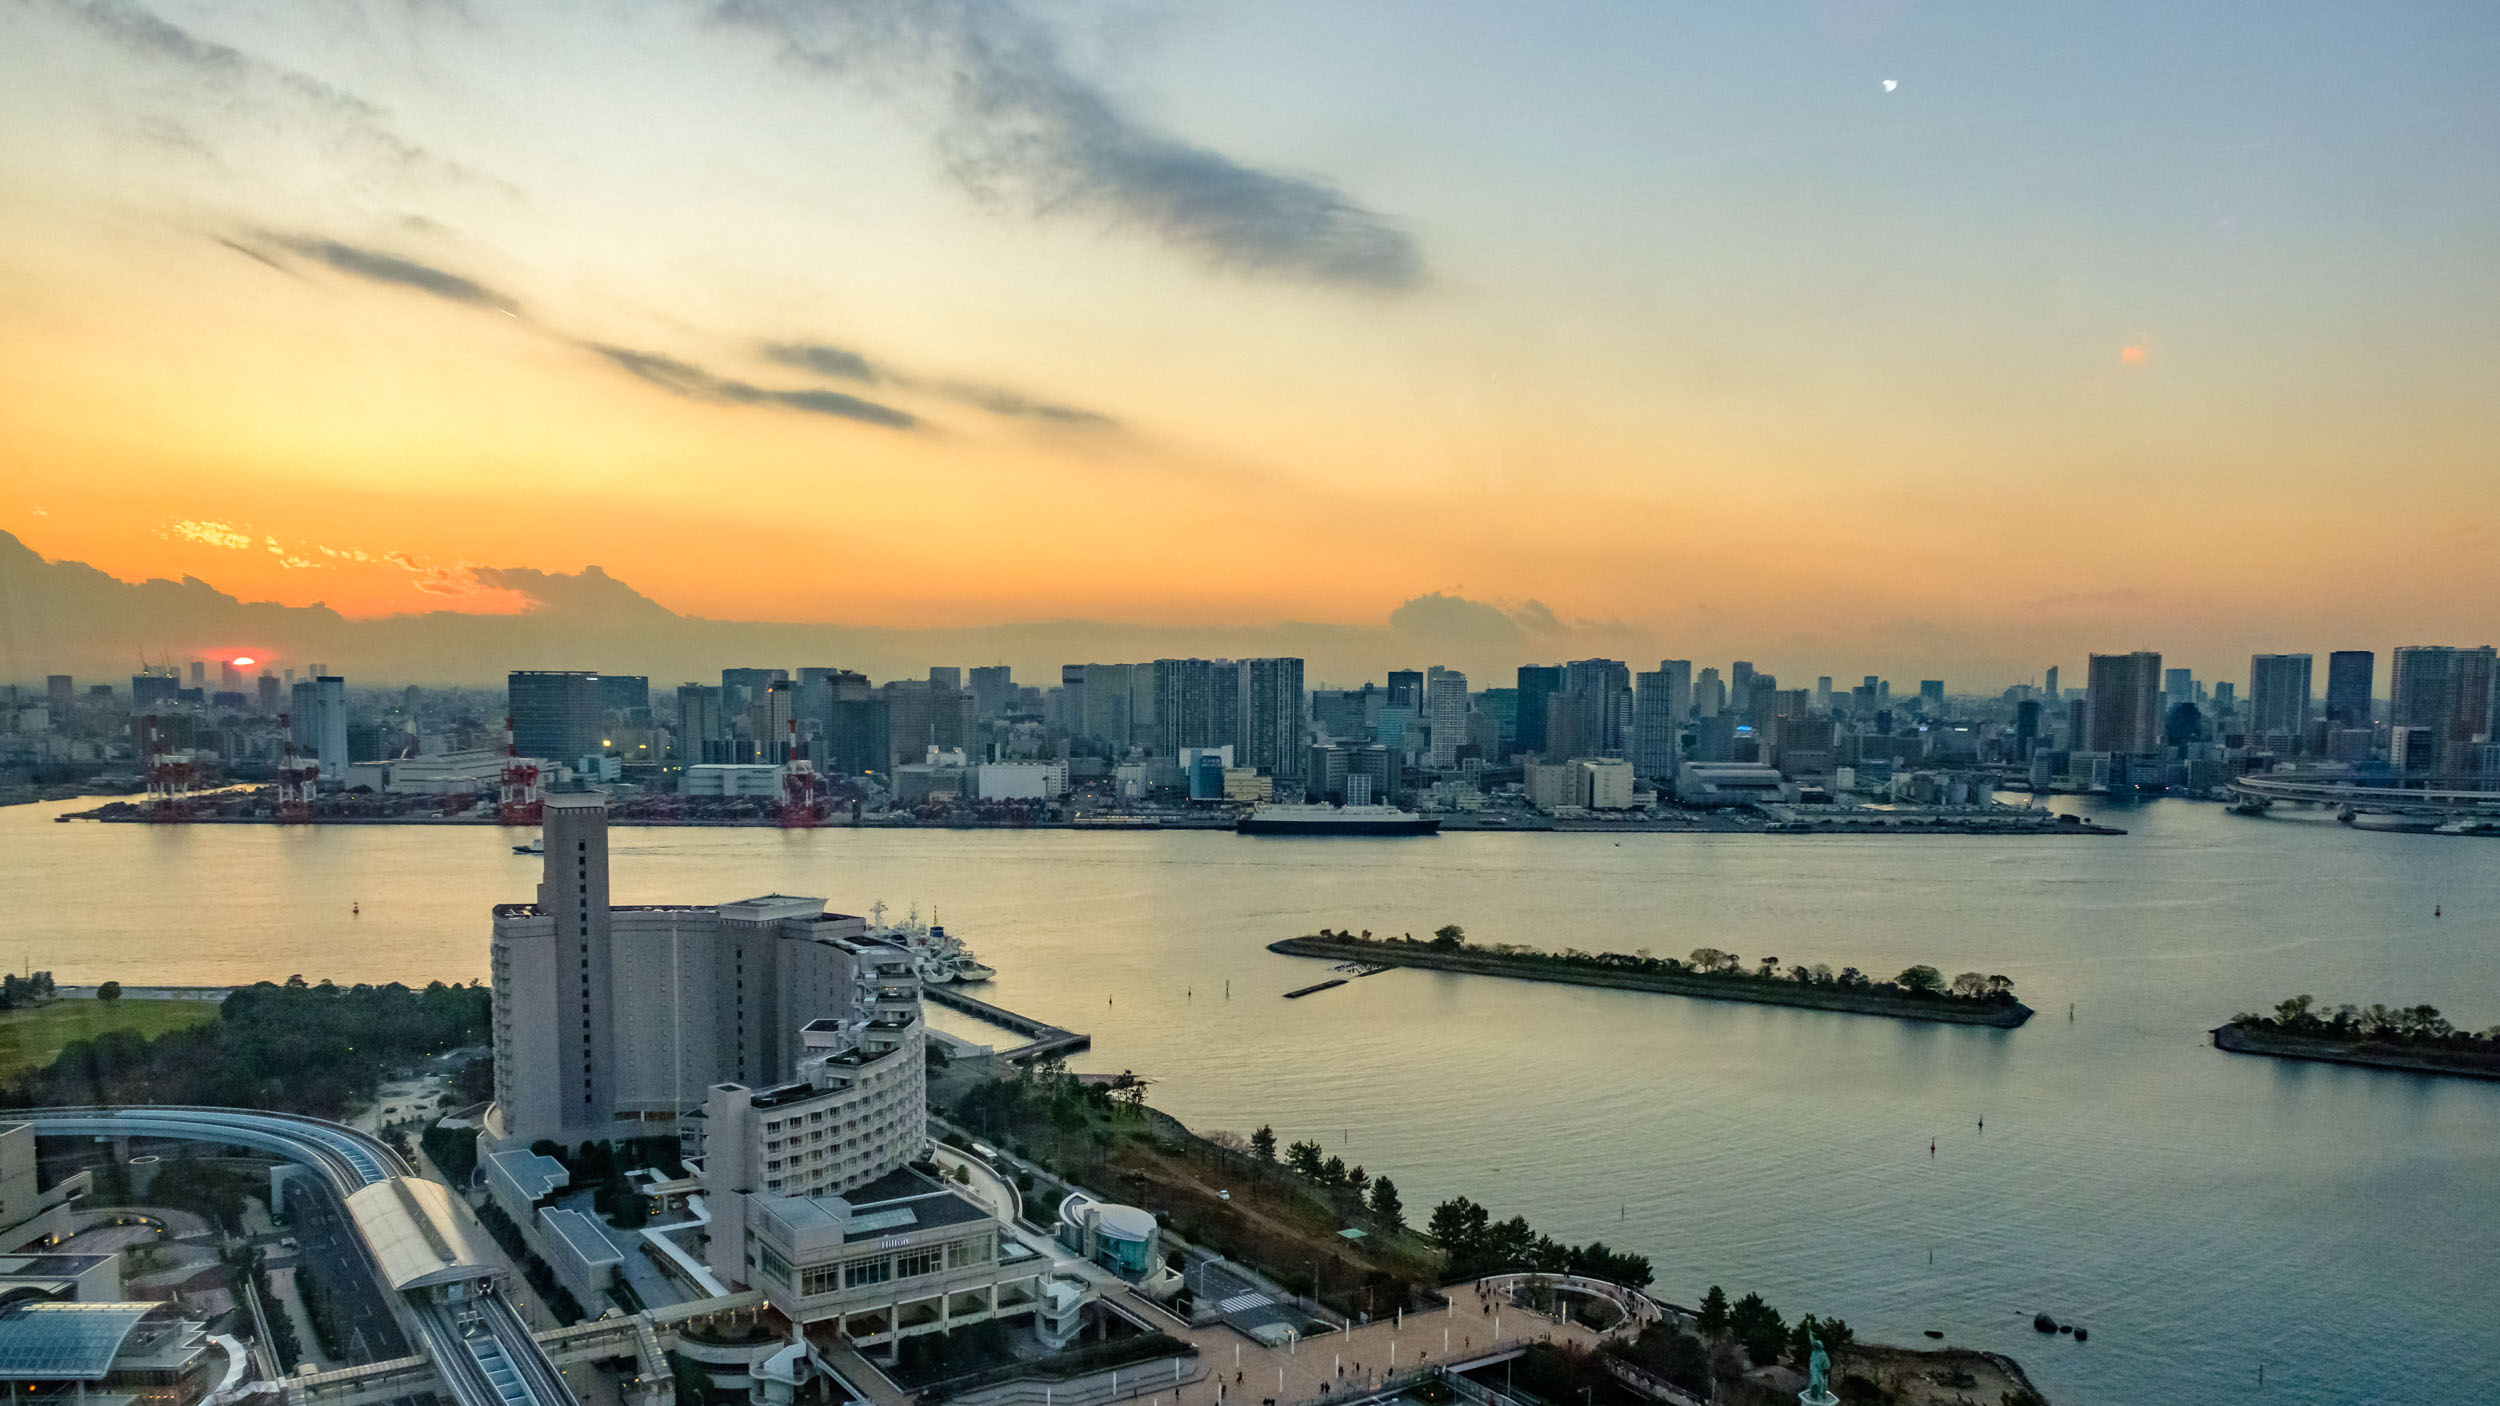 On the other side of the bay is the Shinagawa port area. Where the sun is setting is the approximate location of Mount Fuji. The building in the foreground is Hotel Nikko